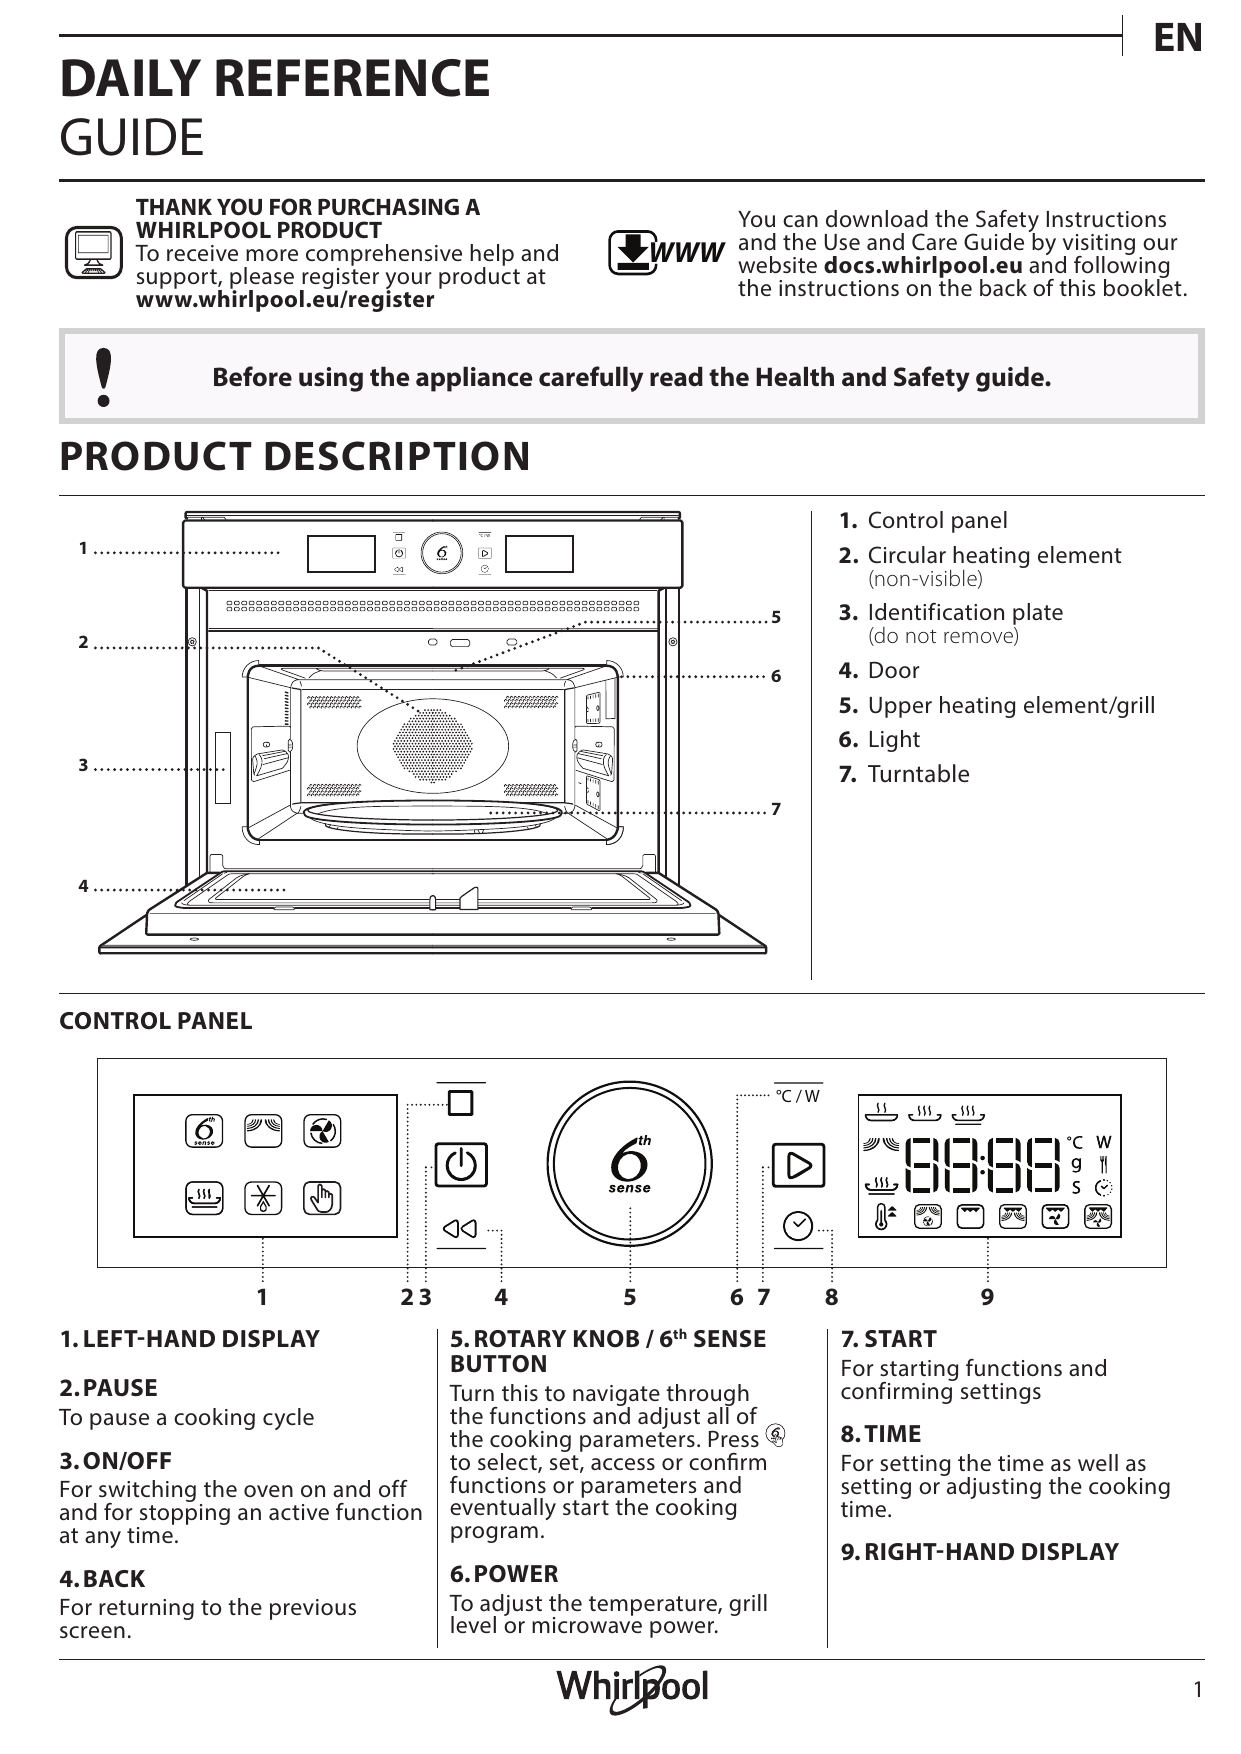 Amw 505 Ix Whirlpool Amw 9605 Ix Setup And User Guide Manualzz